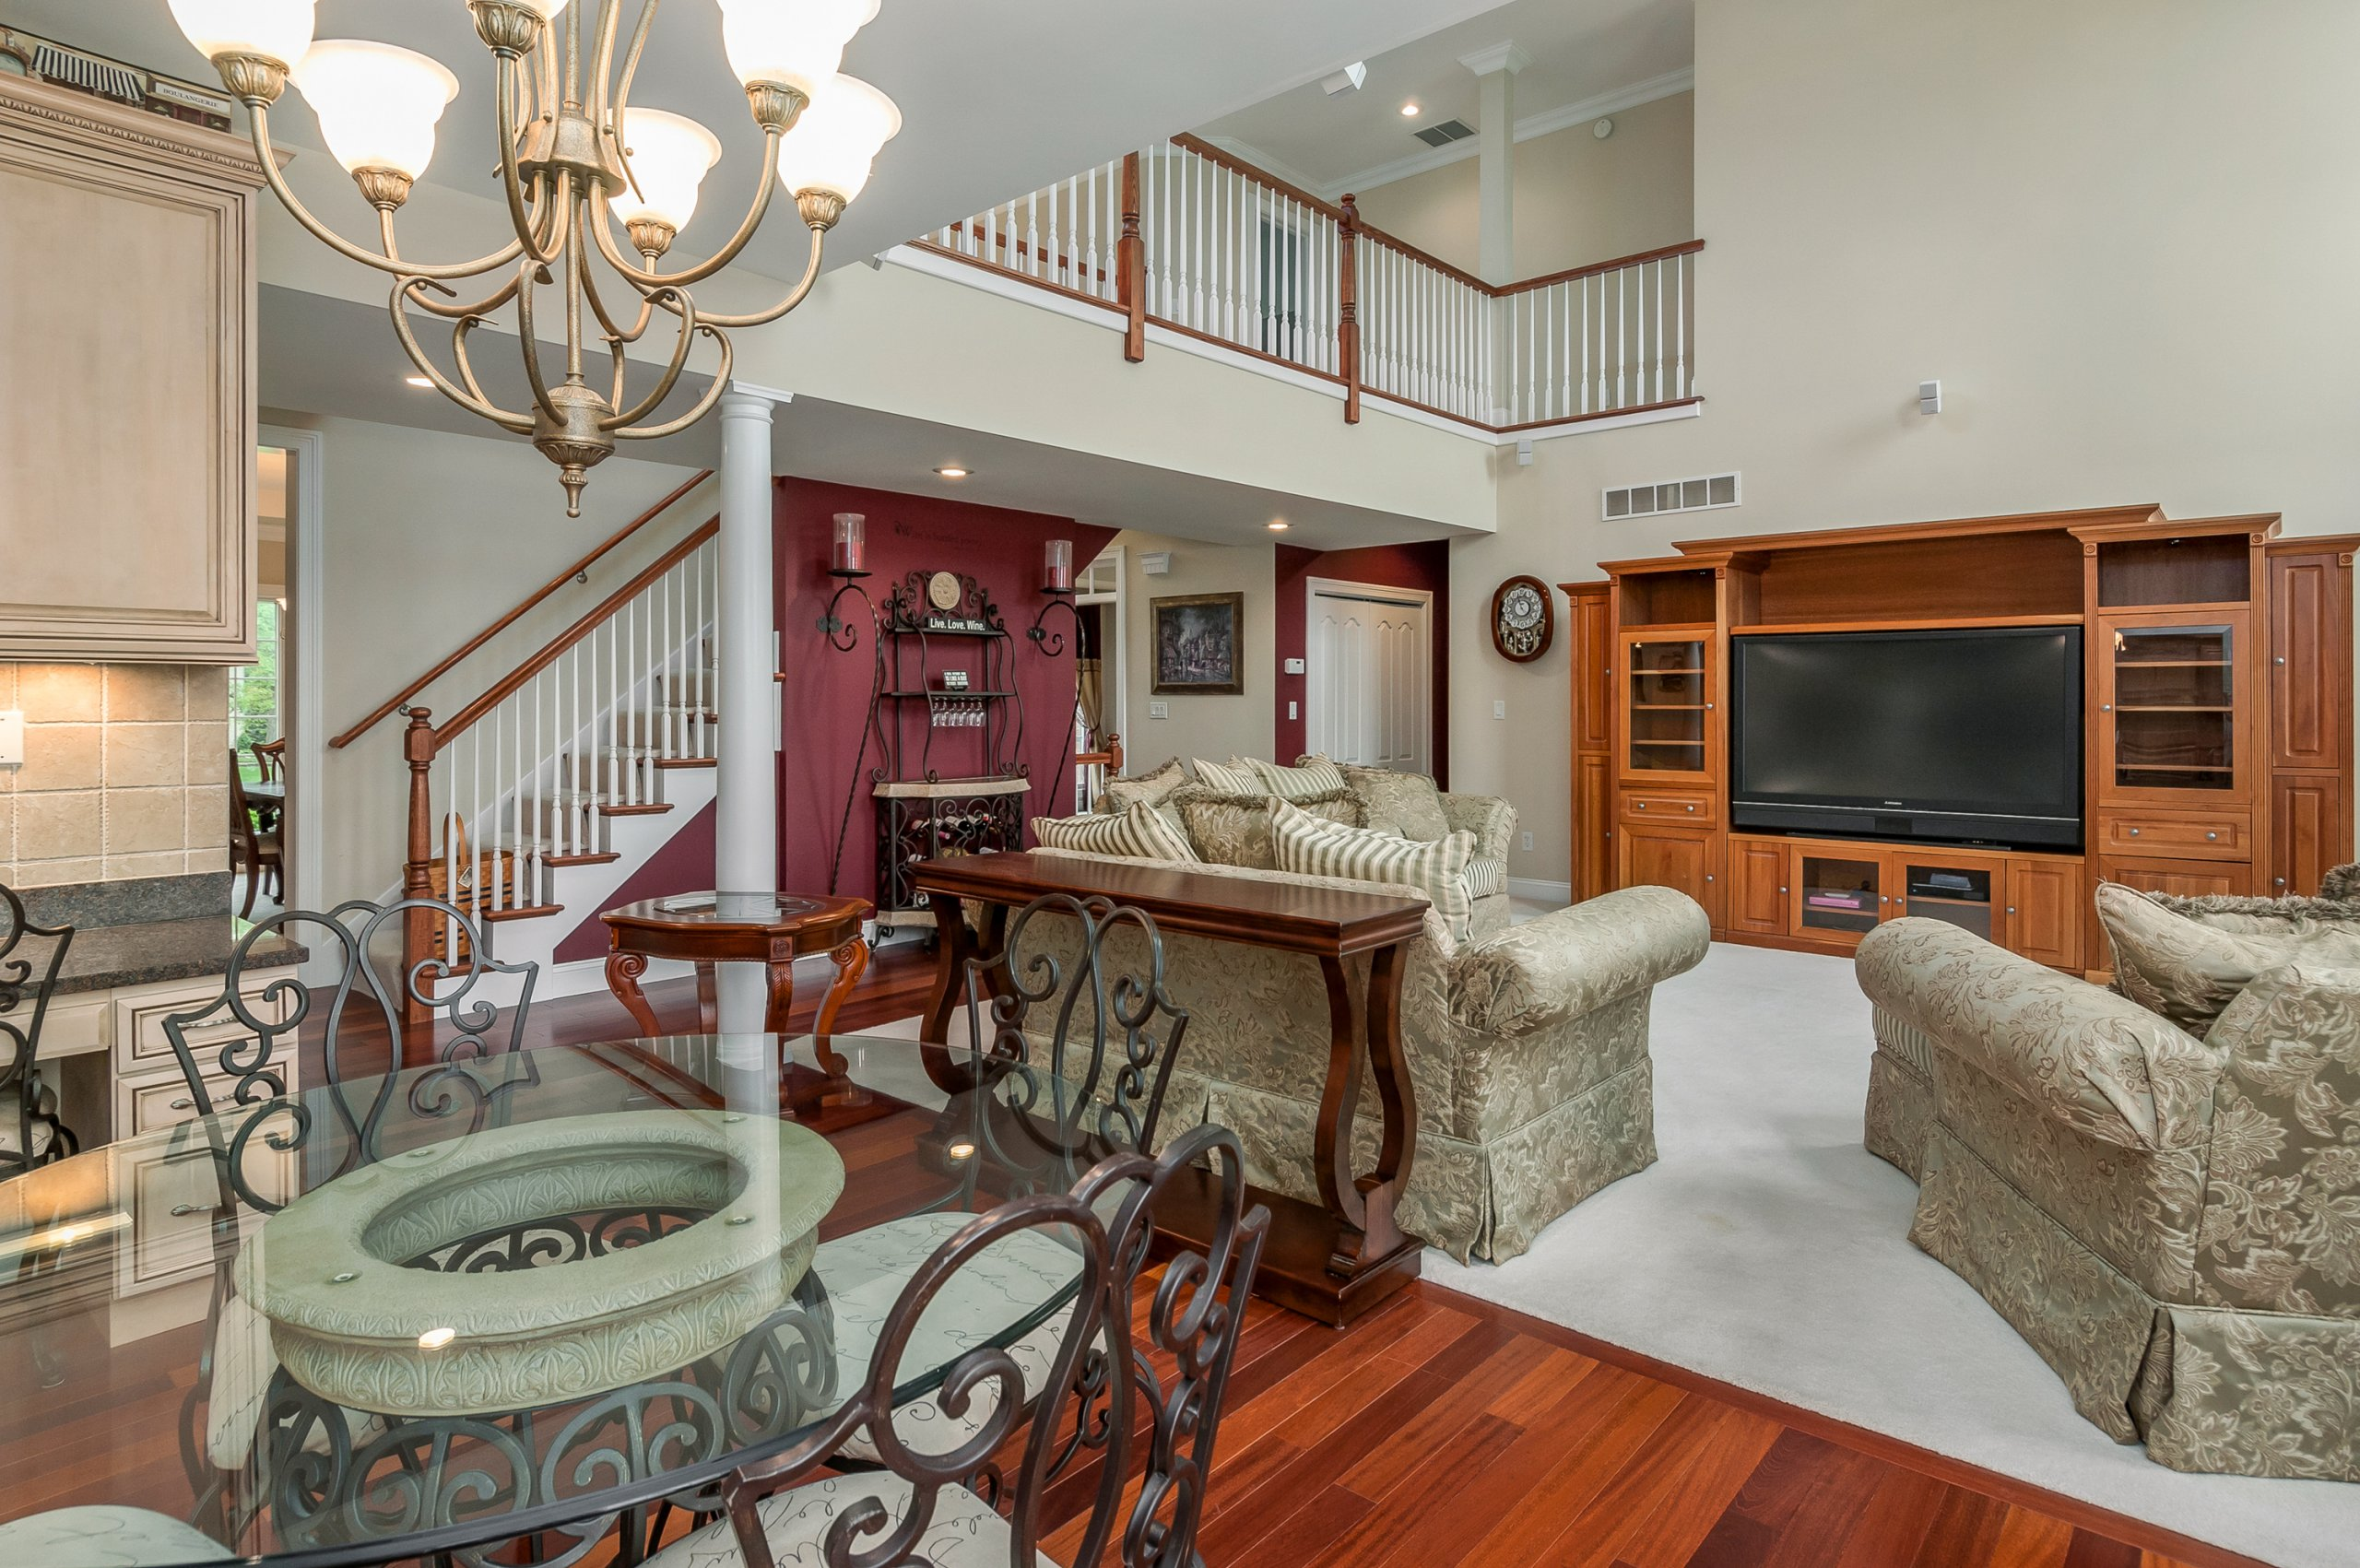 Large, two story living room at estate home in Sandwich, IL